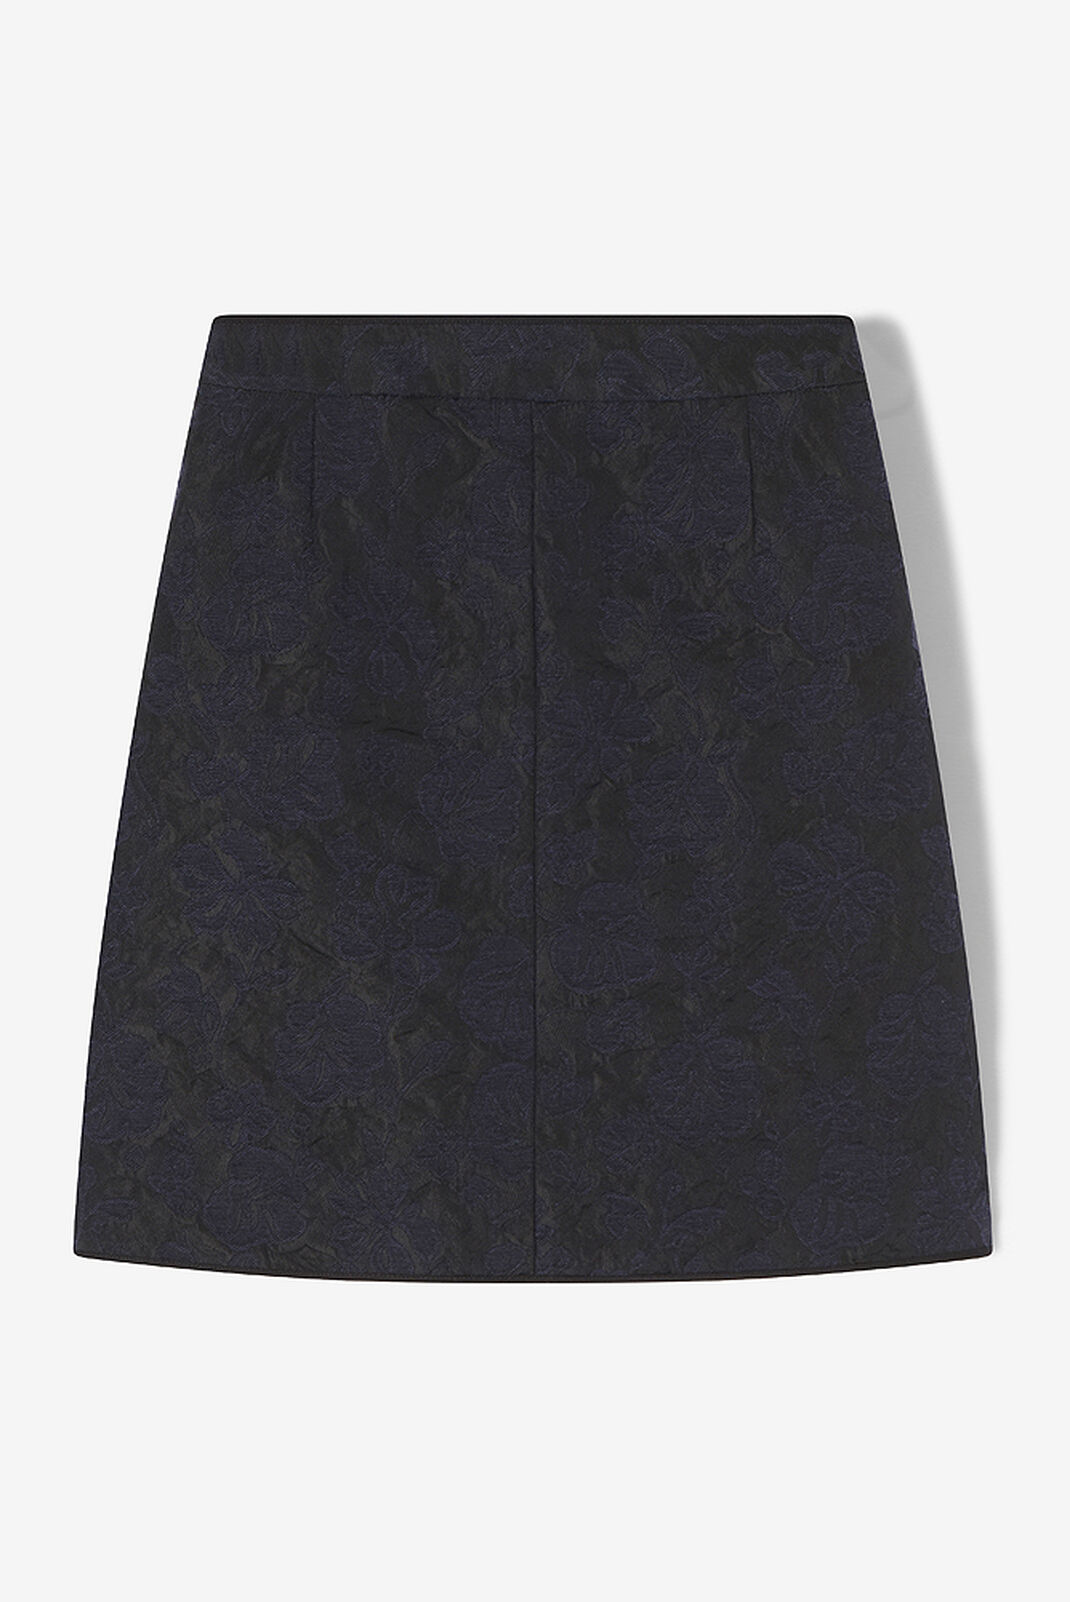 NAVY BLUE Floral Leaf' mini skirt  for women KENZO